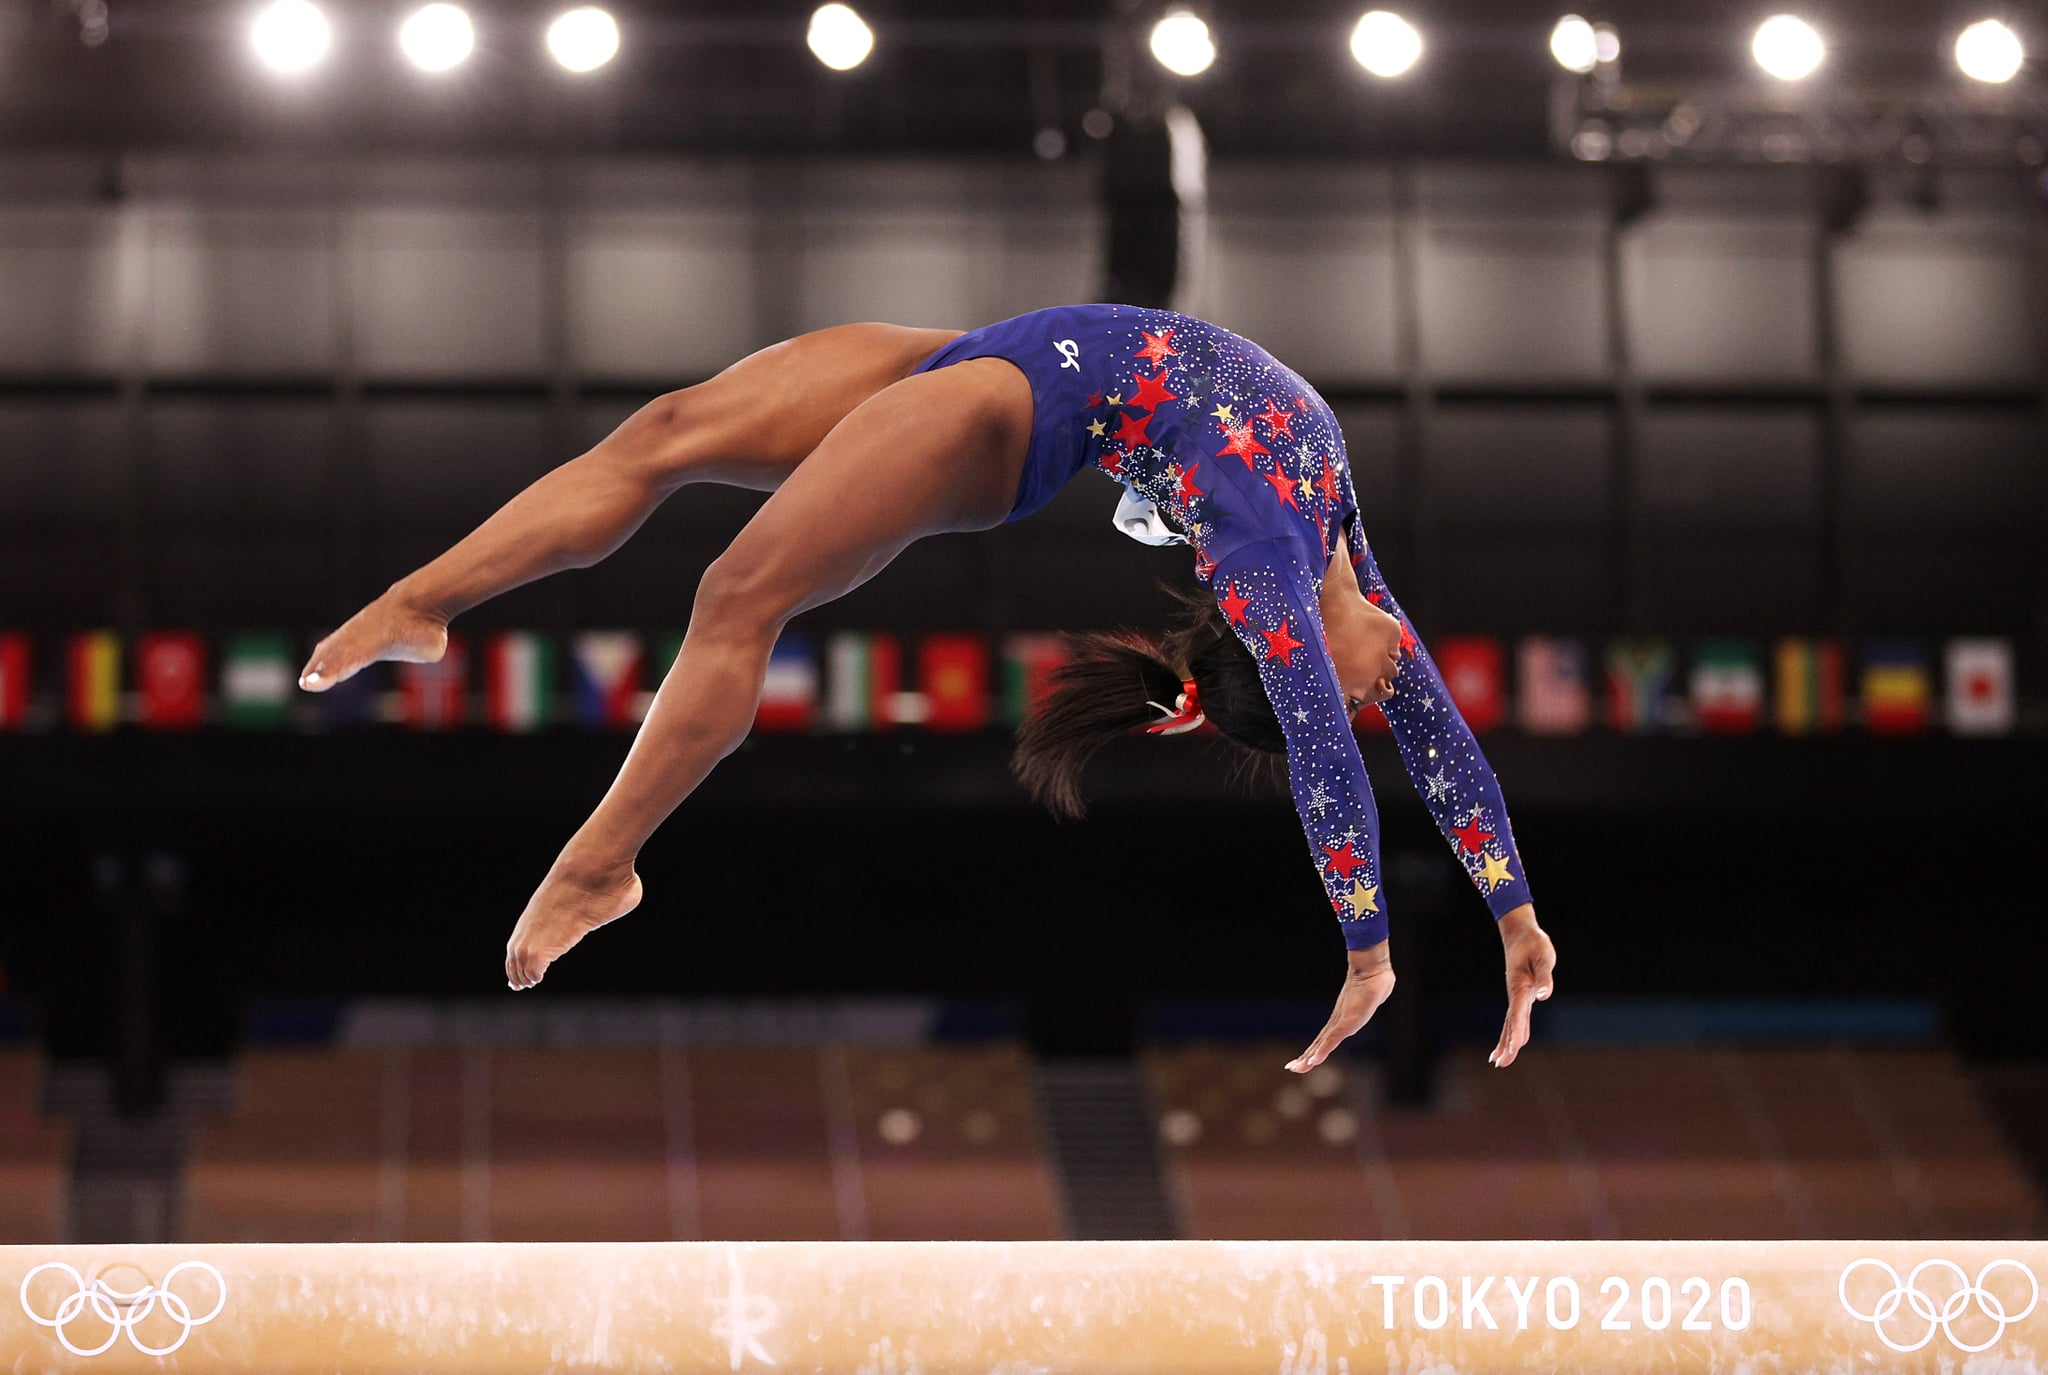 TOKYO, JAPAN - JULY 25: Simone Biles of Team United States competes on balance beam during Women's Qualification on day two of the Tokyo 2020 Olympic Games at Ariake Gymnastics Centre on July 25, 2021 in Tokyo, Japan. (Photo by Ezra Shaw/Getty Images)